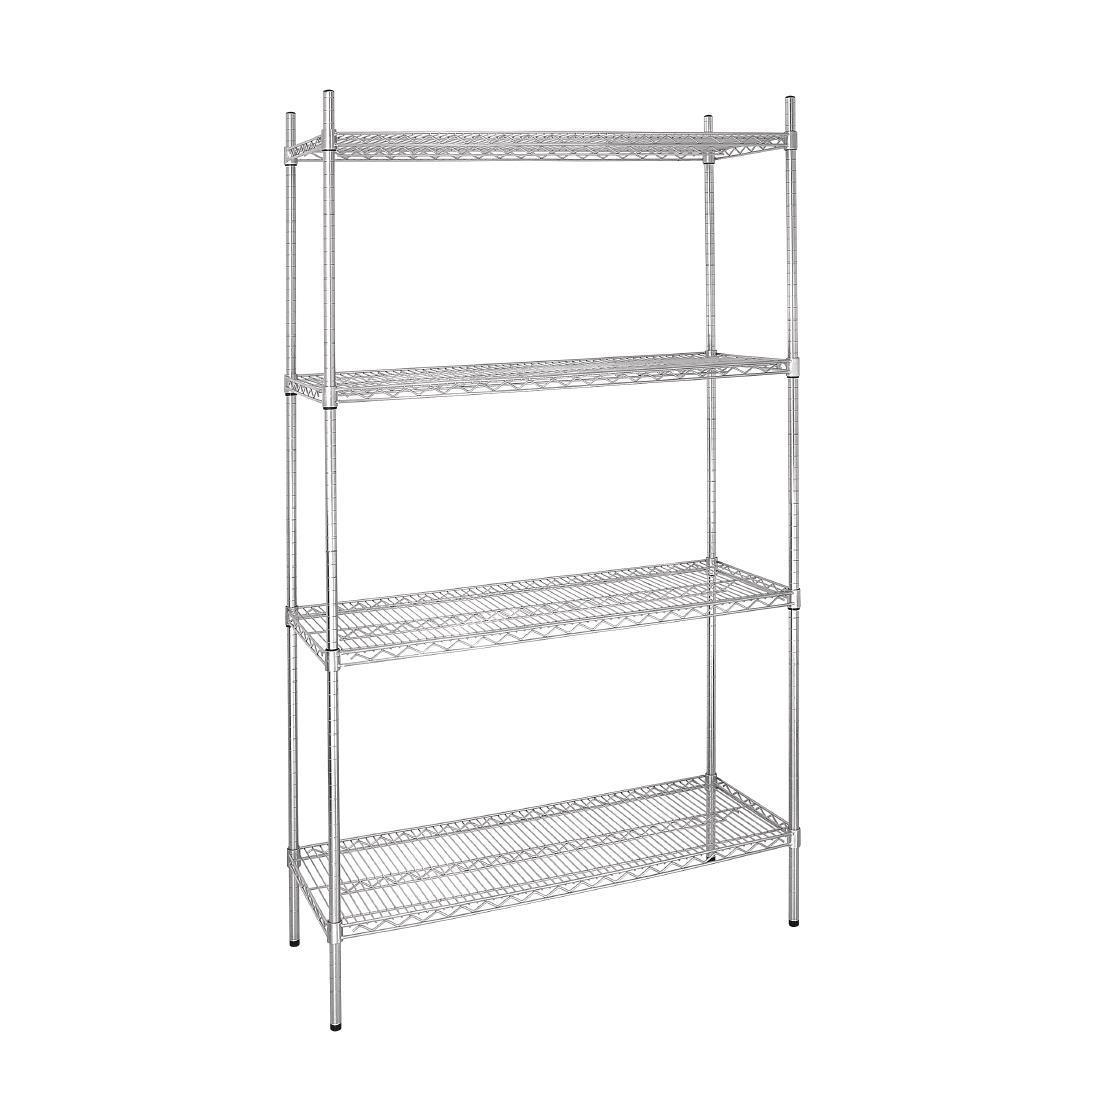 Vogue 4 Tier Wire Shelving Kit 915x460mm - L927